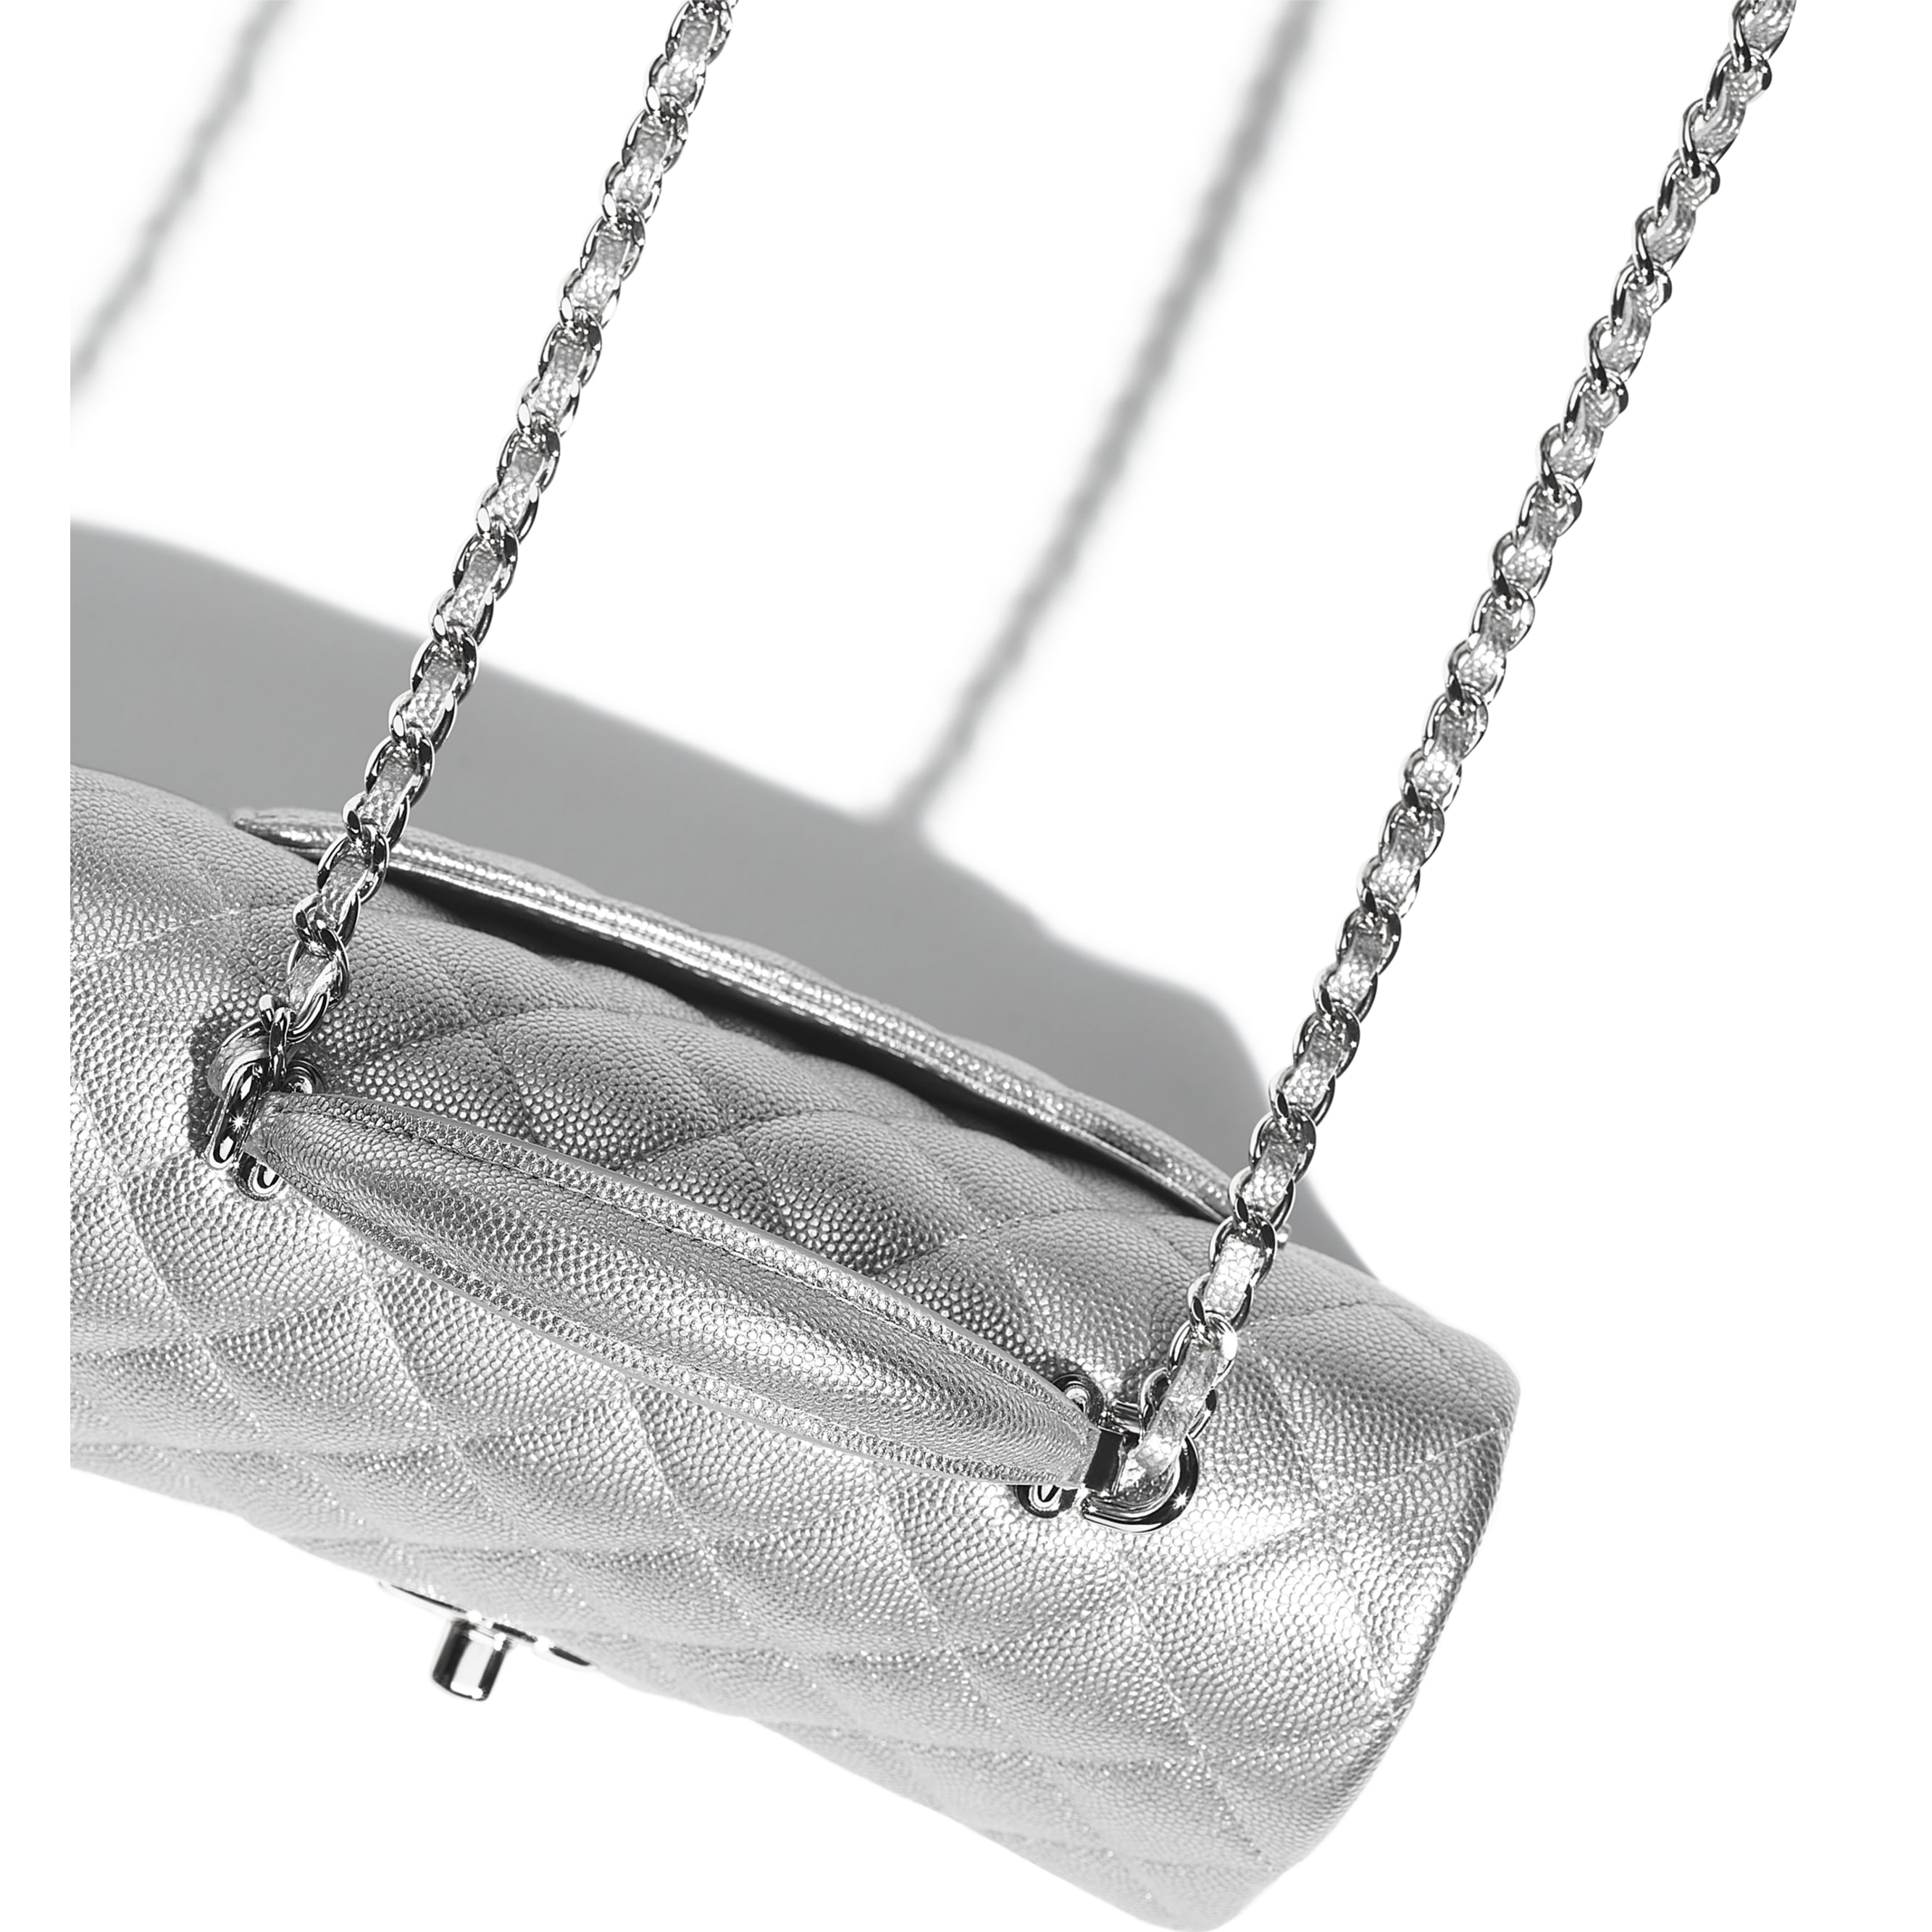 Mini Flap Bag with Top Handle - Silver - Metallic Grained Calfskin & Silver-Tone Metal - CHANEL - Extra view - see standard sized version